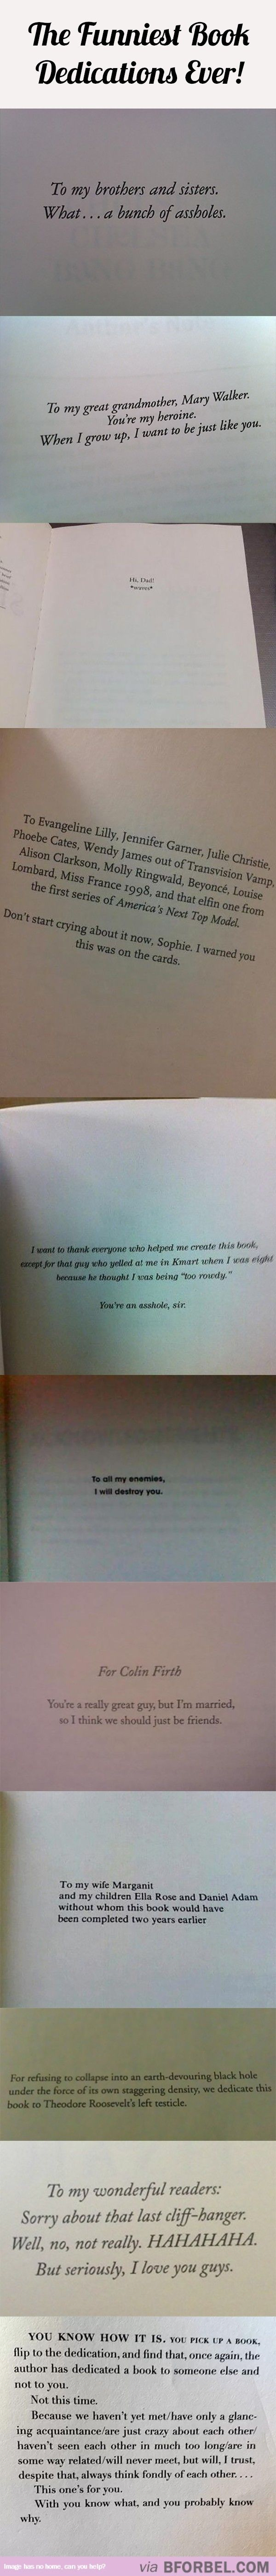 I always, ALWAYS read the Book Dedication before starting a novel. They're either sassy and witty or sincere and heart-melting.